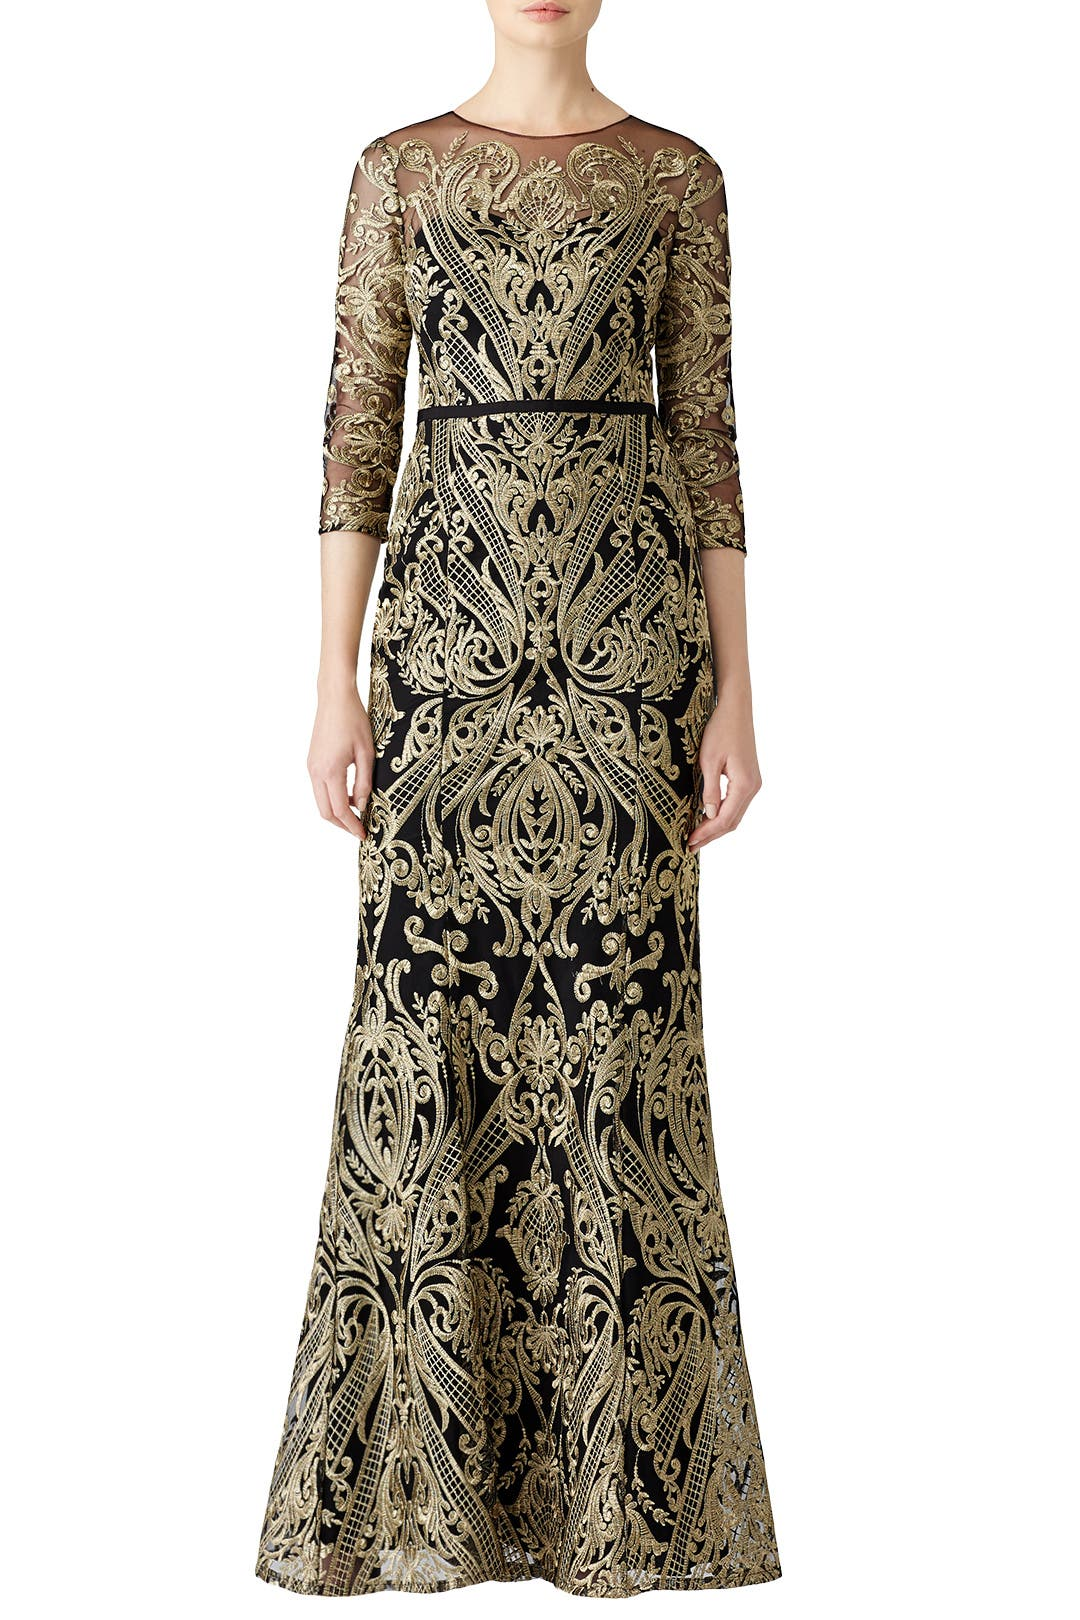 dfc7a9432a01 Marchesa Notte. Read Reviews. Moises Embroidered Gown